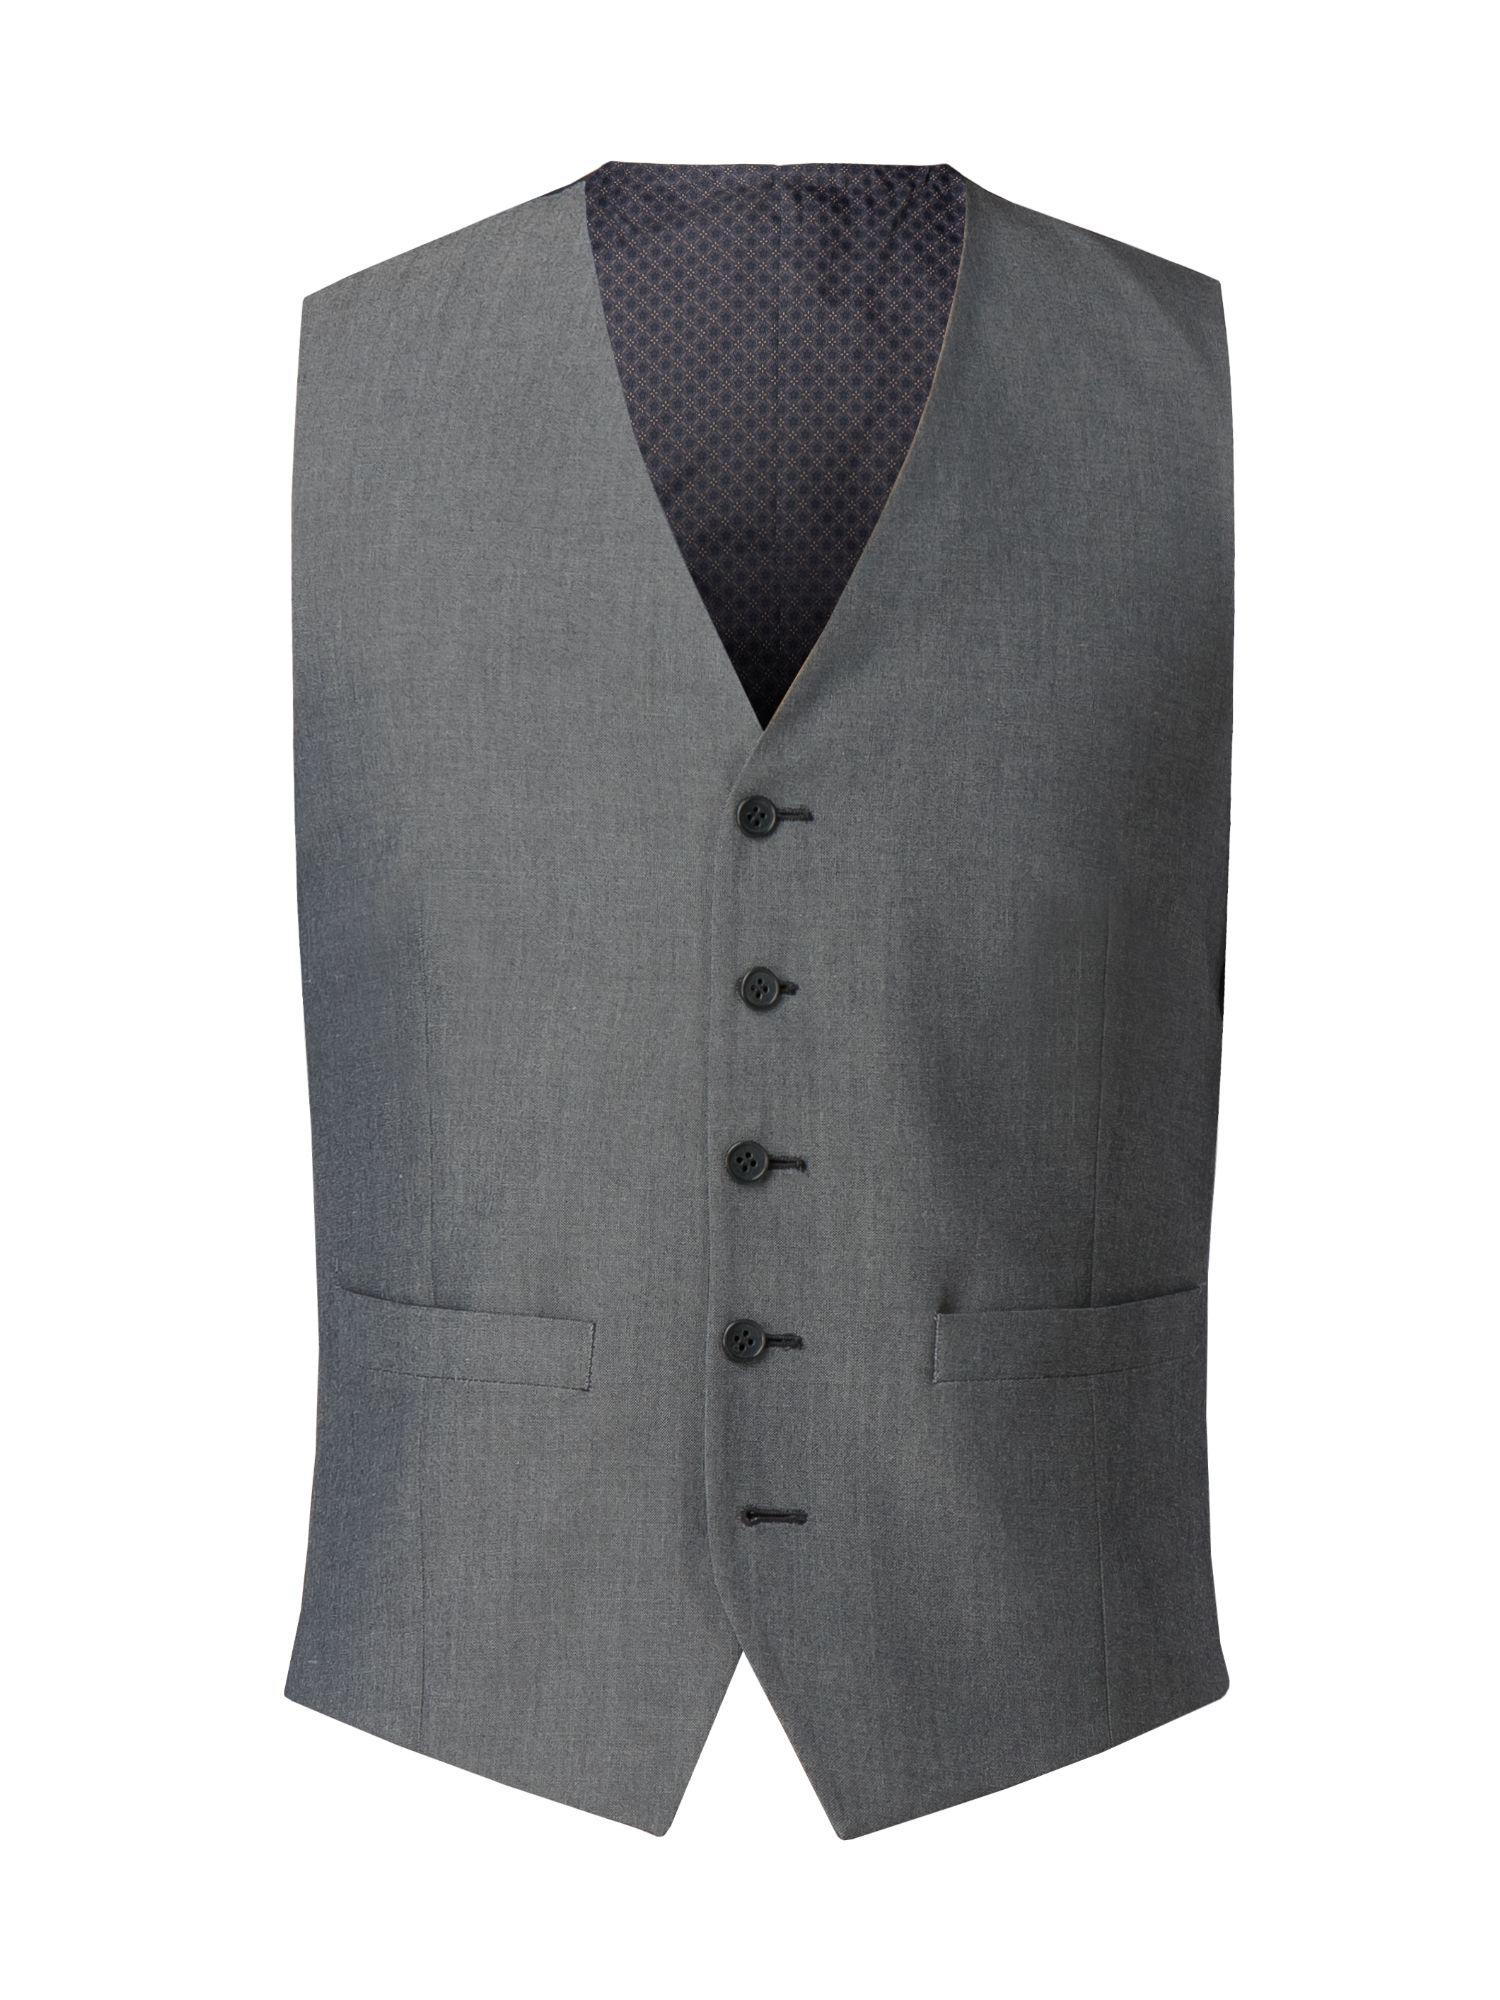 6c02a989f Limehaus Men's Harry Plain Silver Grey Tonic Waistcoat in Gray for ...